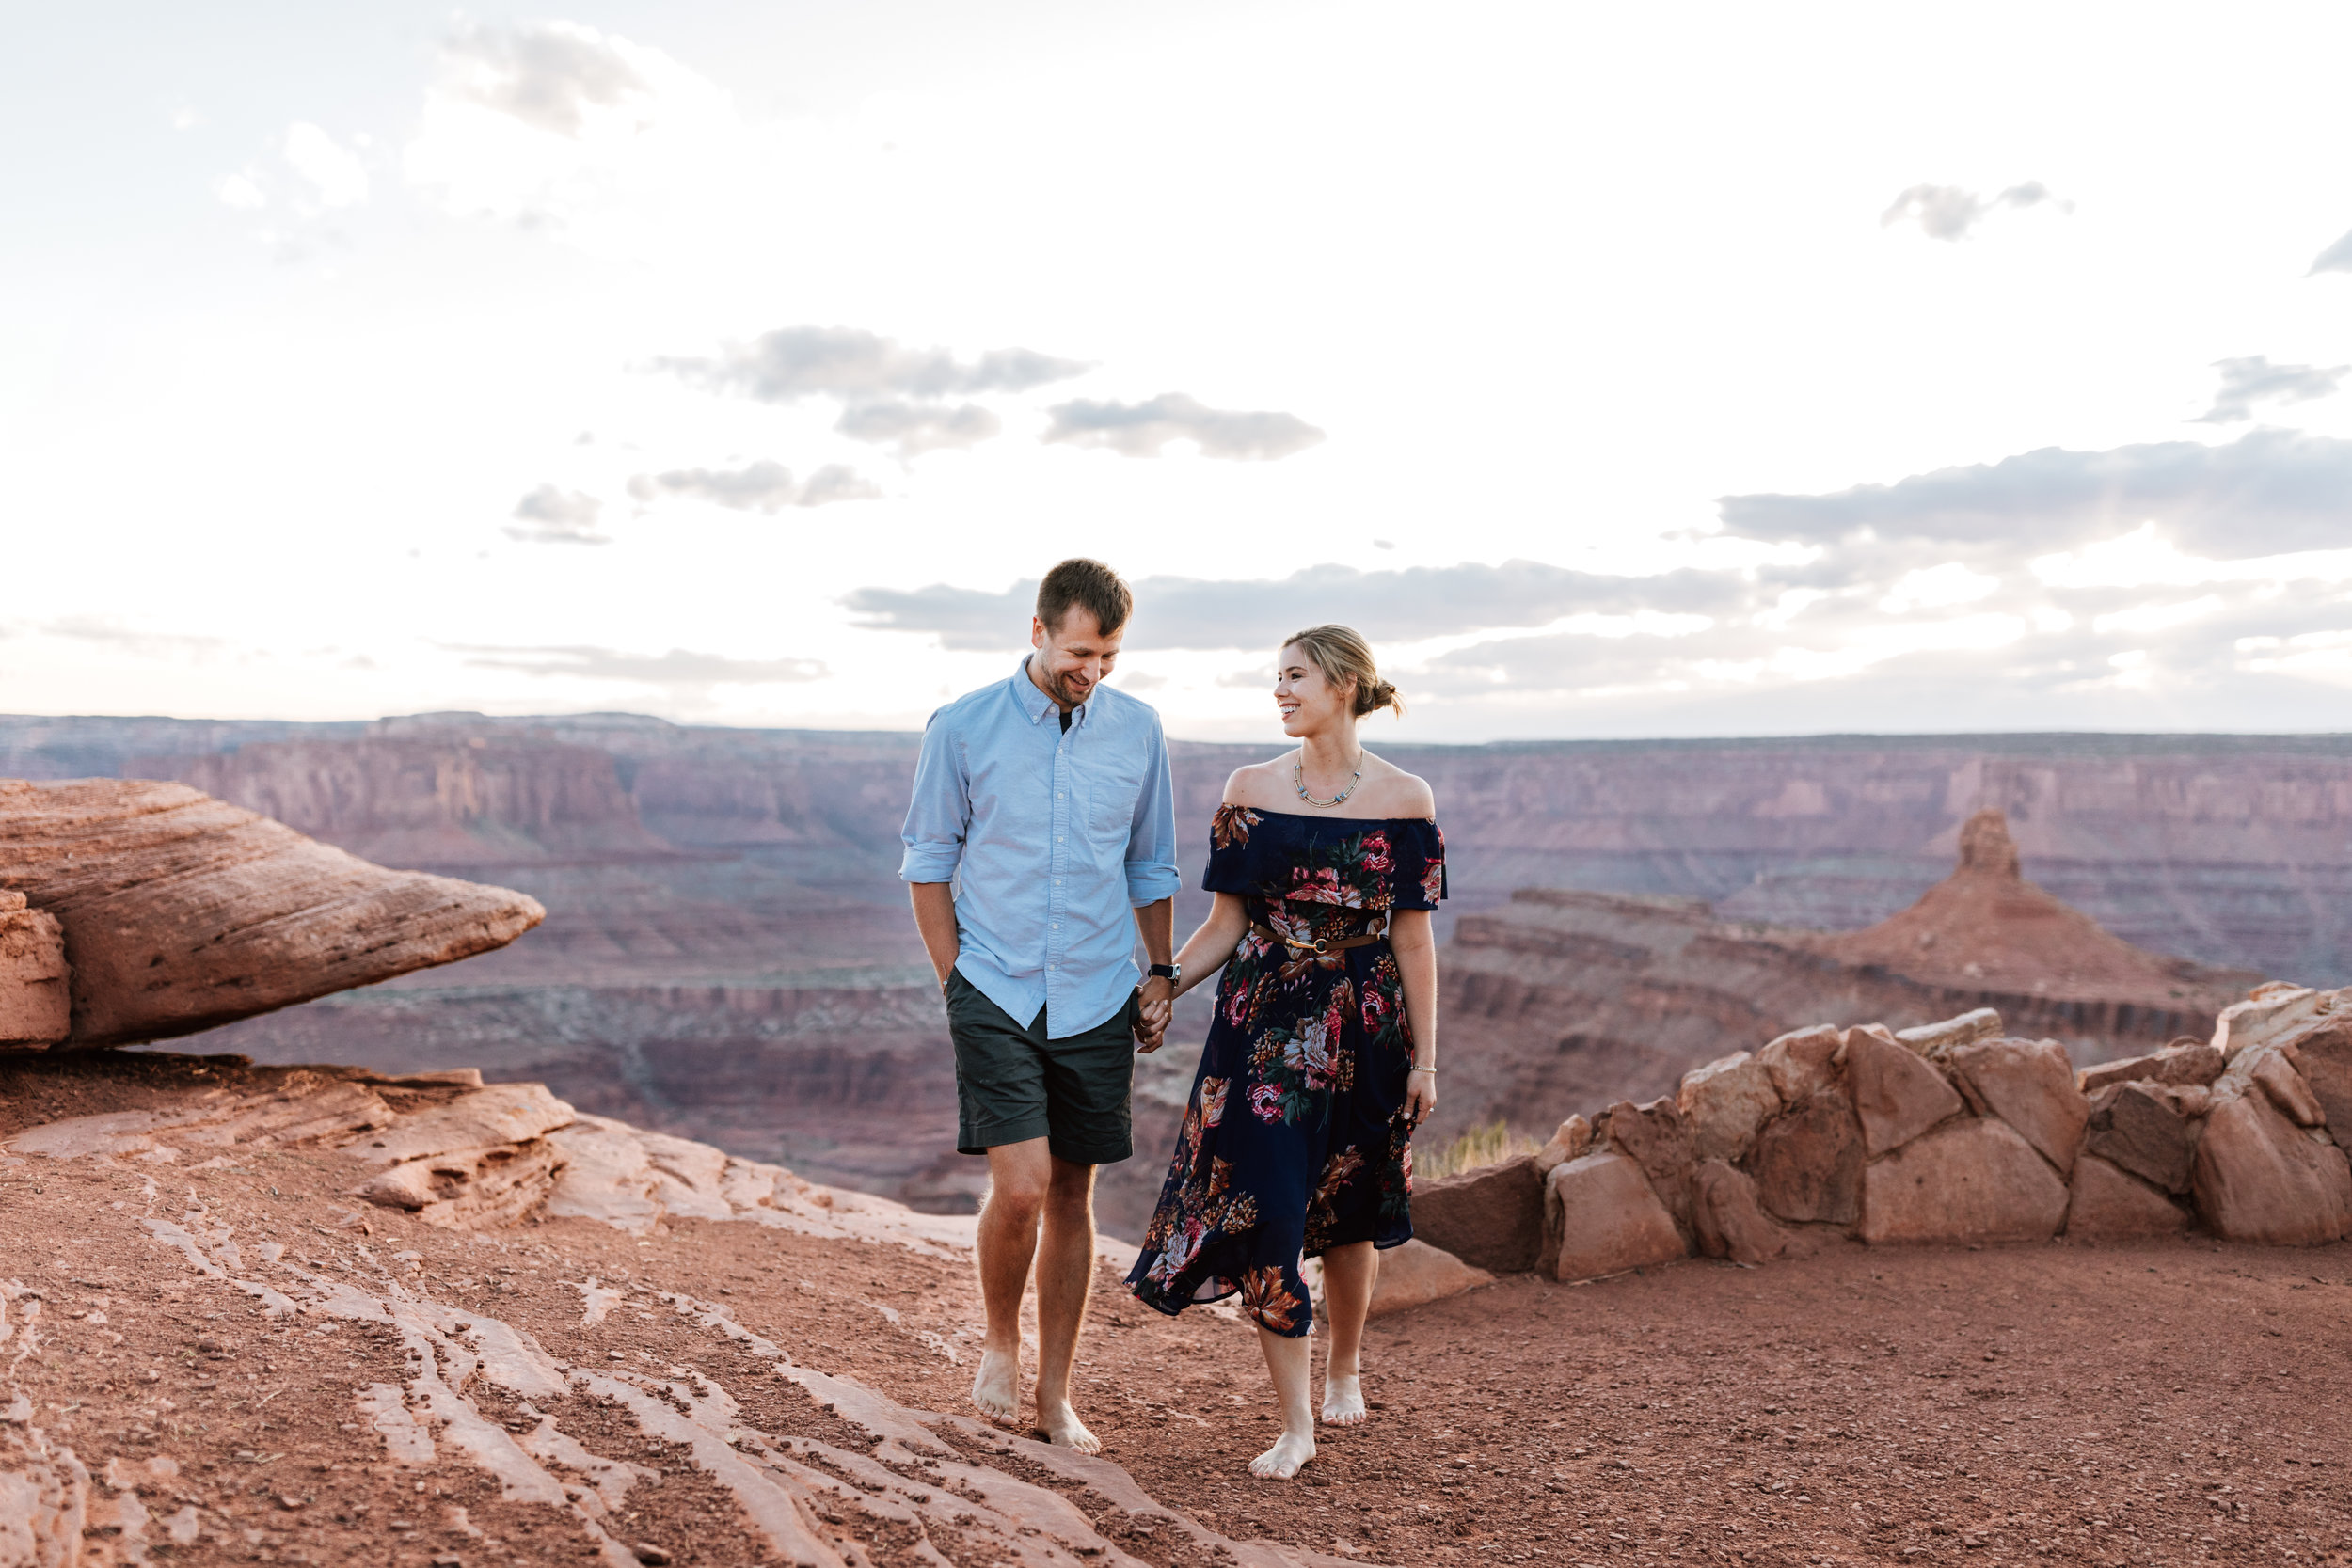 Emily + Pat Anniversary Adventurous bride, Bailey Dalton Photo, boho bride, Intimate Wedding photographer, Traveling Photographer, Utah Engagement photographer, Utah Wedding Photographer Bailey Dalton Photo 2016 - Utah Wedding Pho-55.jpg